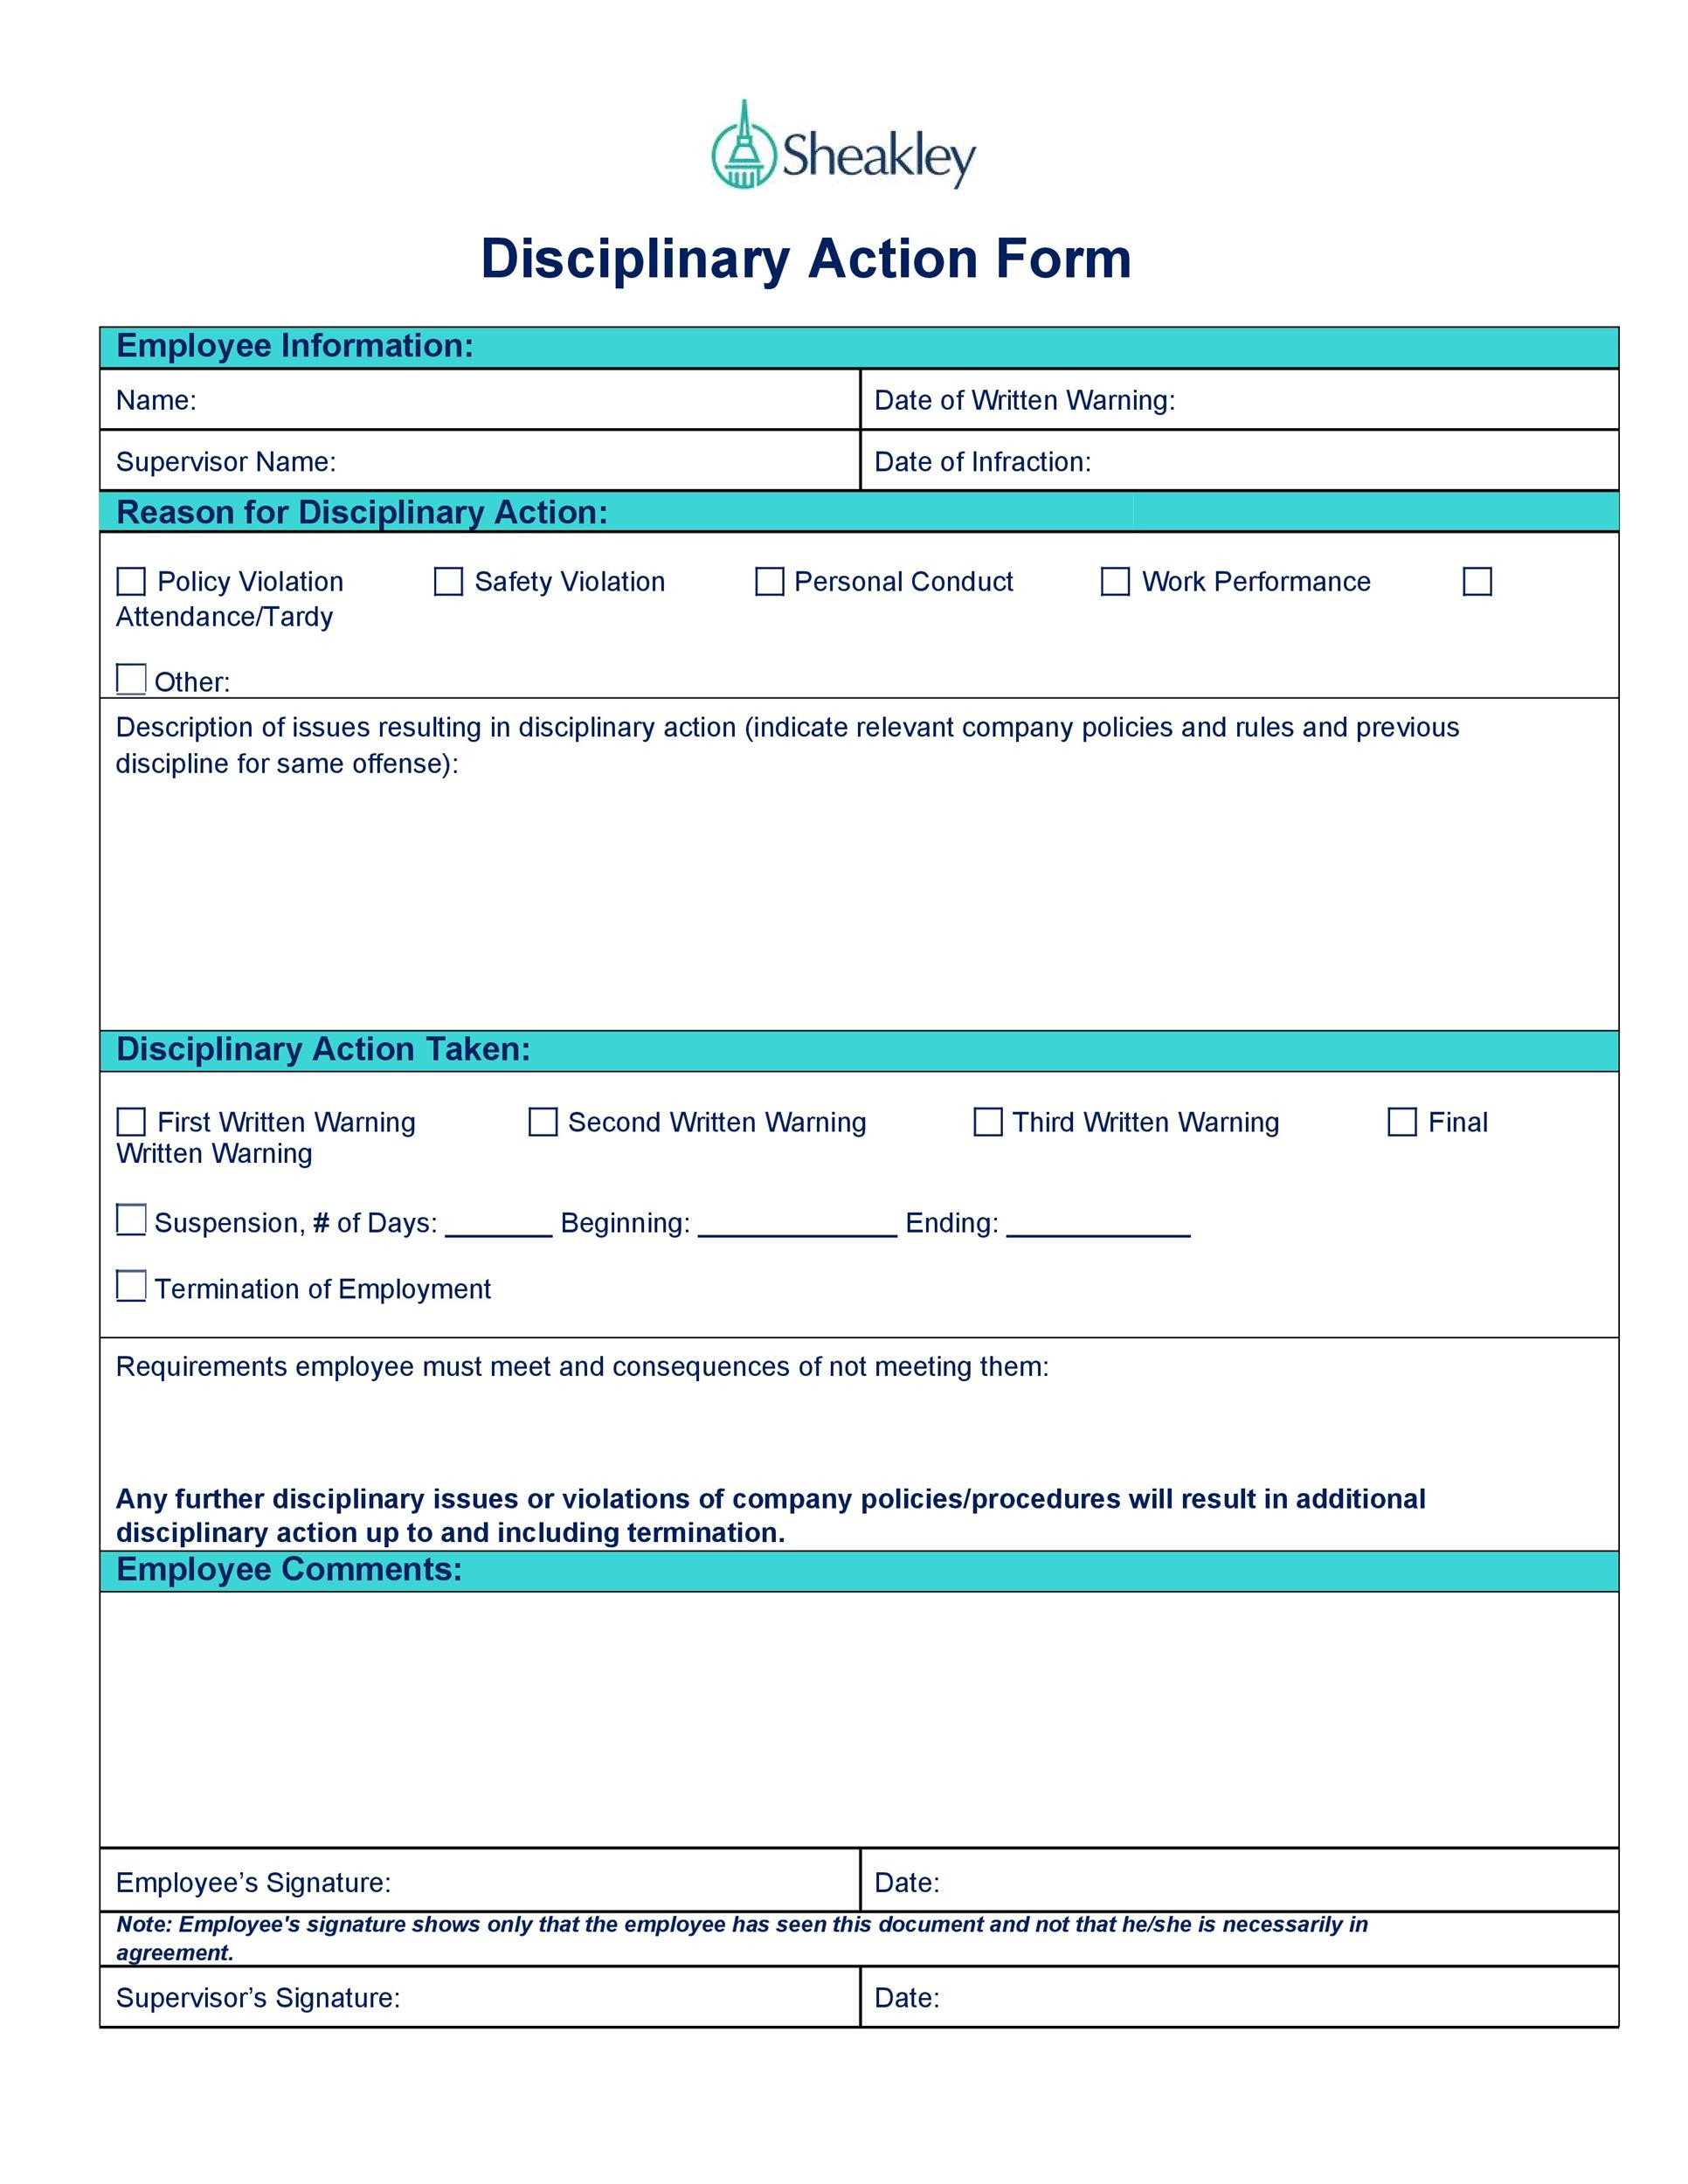 Disciplinary Action Forms